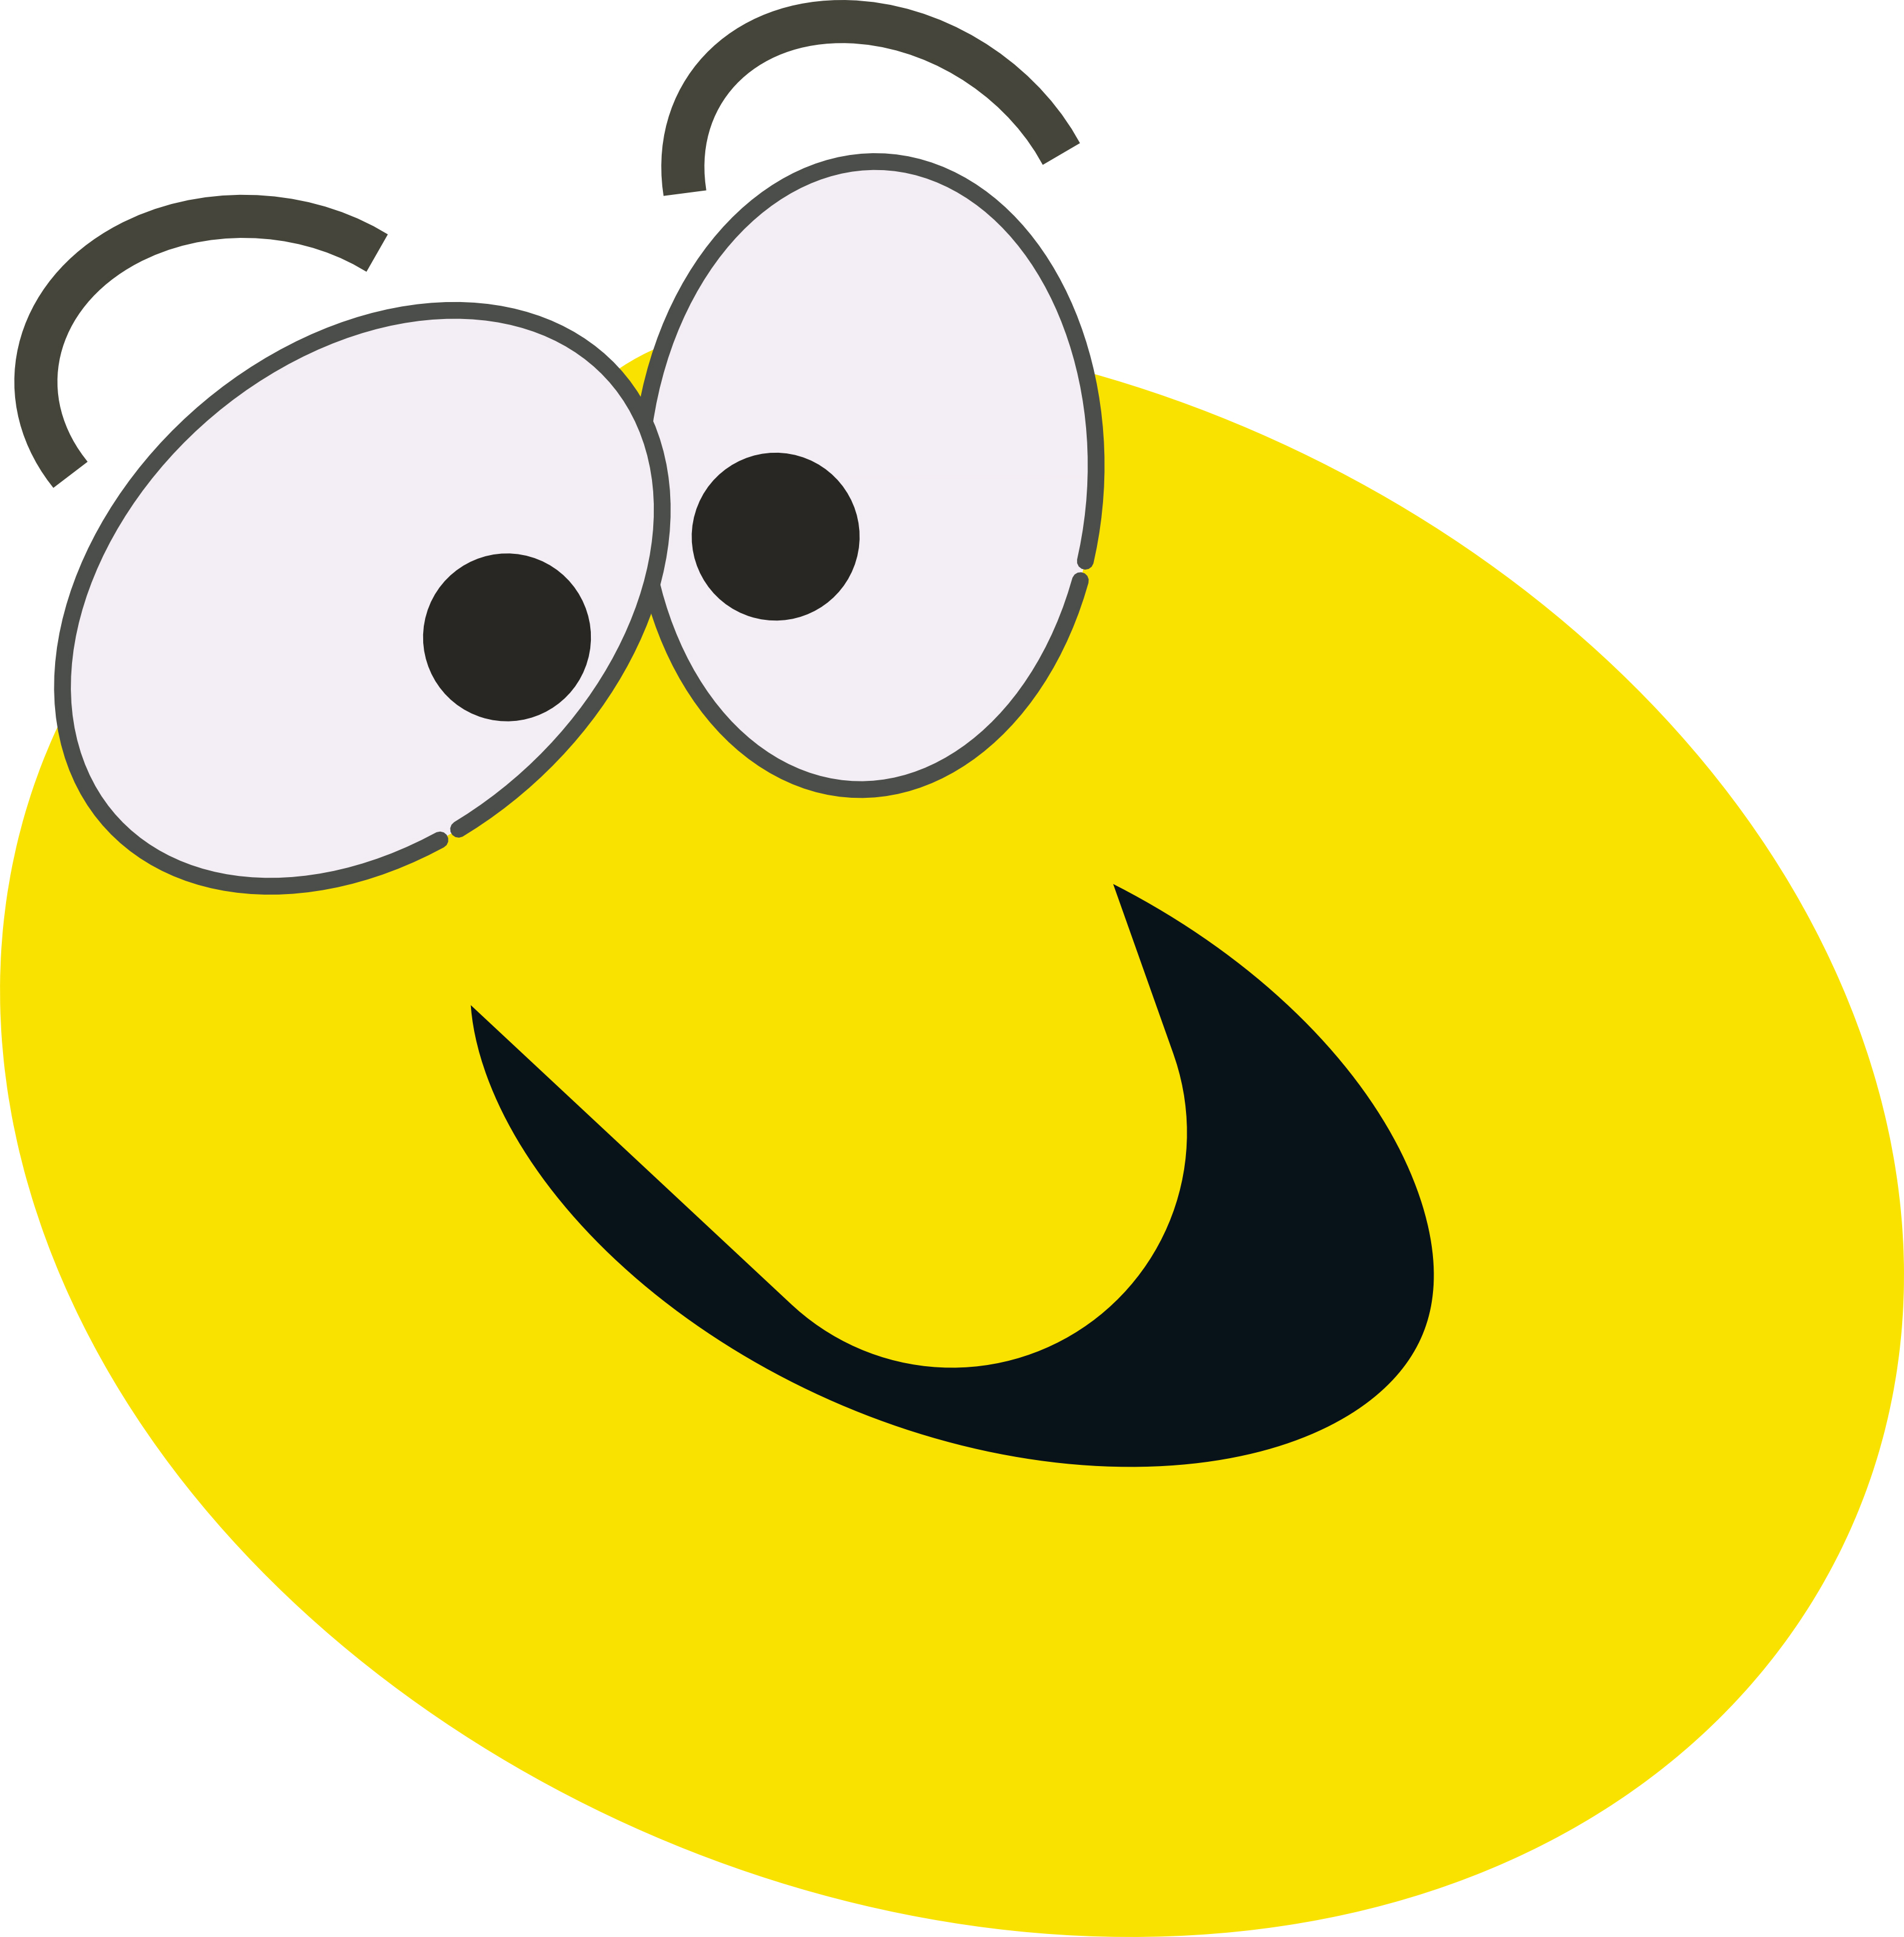 Laughing Smiley Face Clip Art | Clipart Panda - Free ...